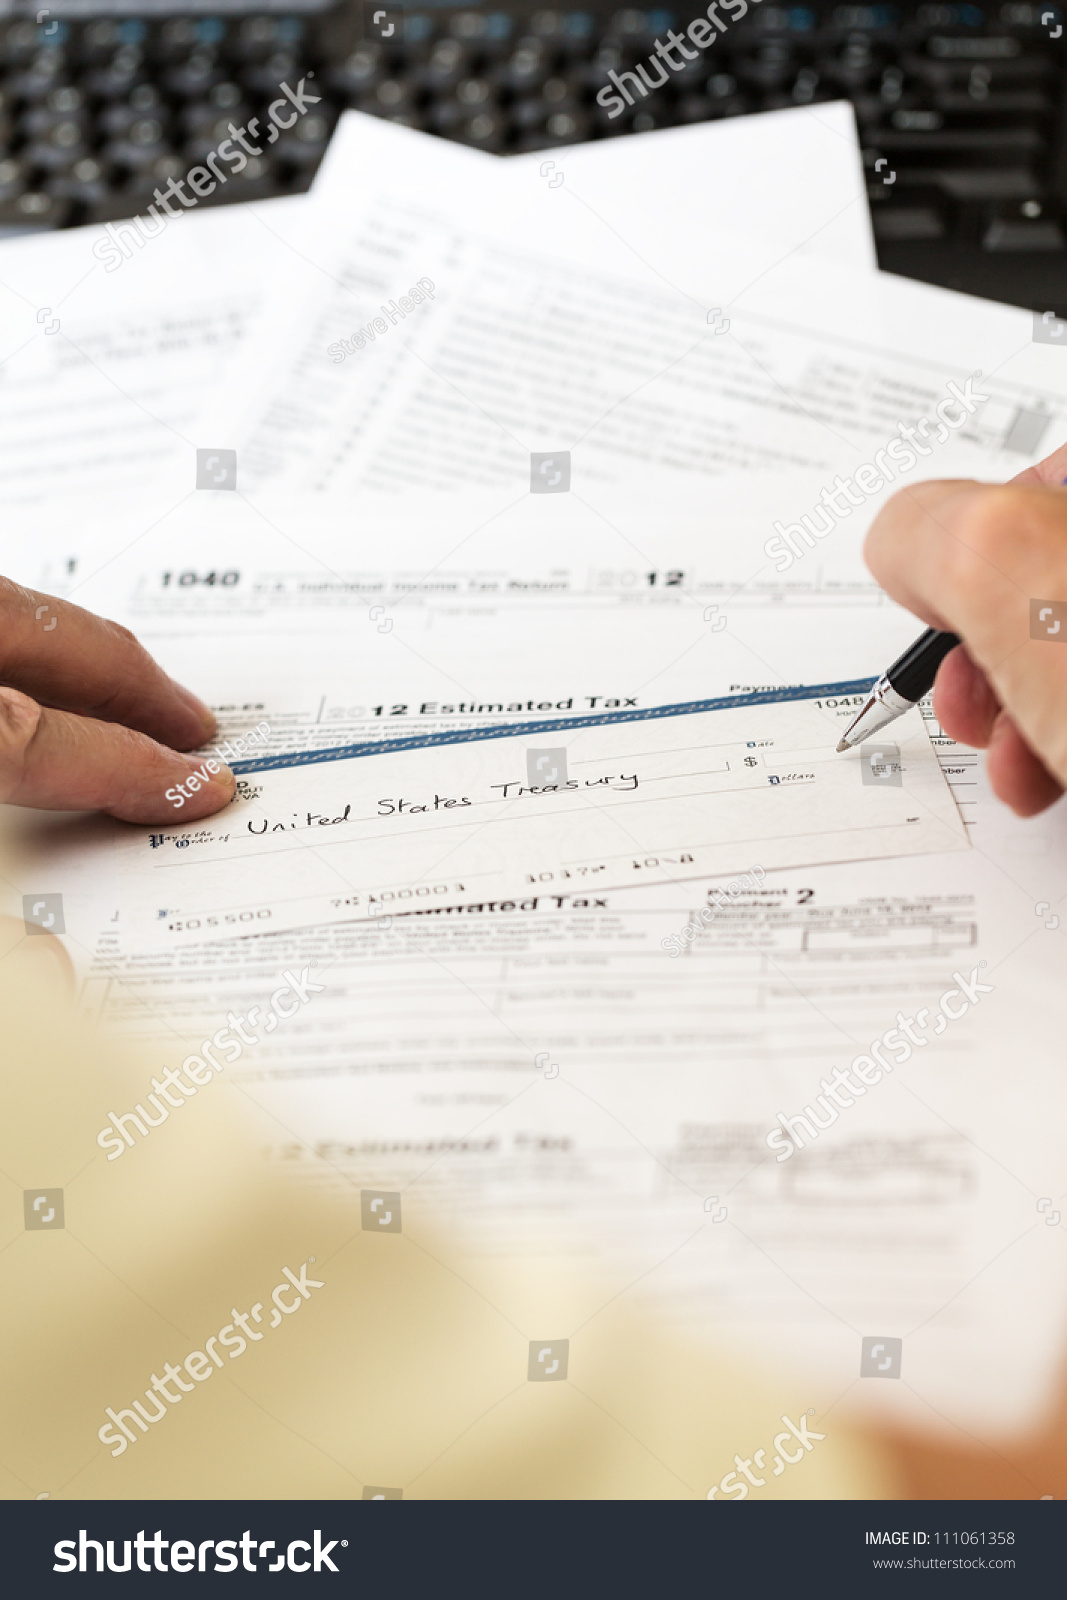 Tax form 1040 tax year 2012 stock photo 111061358 shutterstock tax form 1040 for tax year 2012 for us individual tax return with pen and check falaconquin